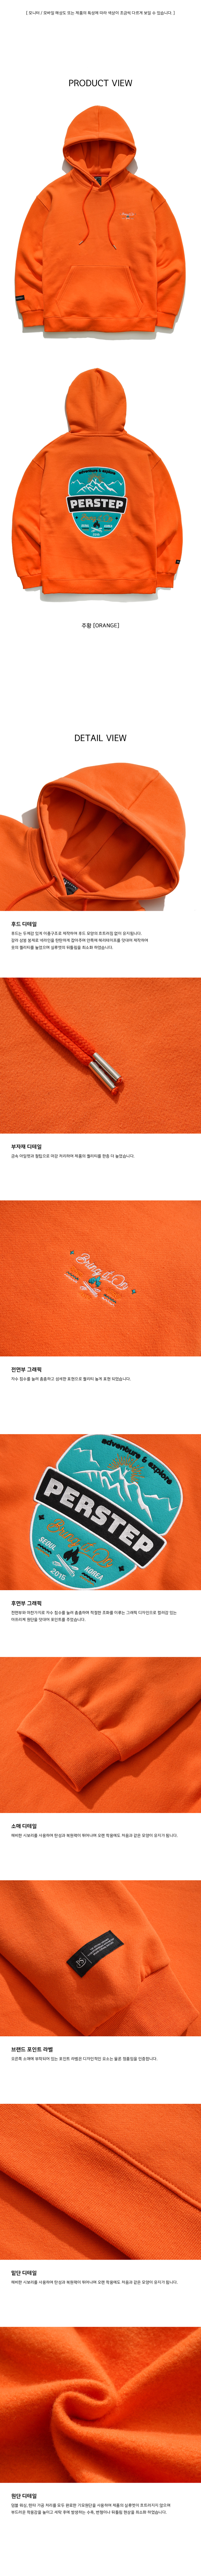 4382_detail_orange_ms.jpg